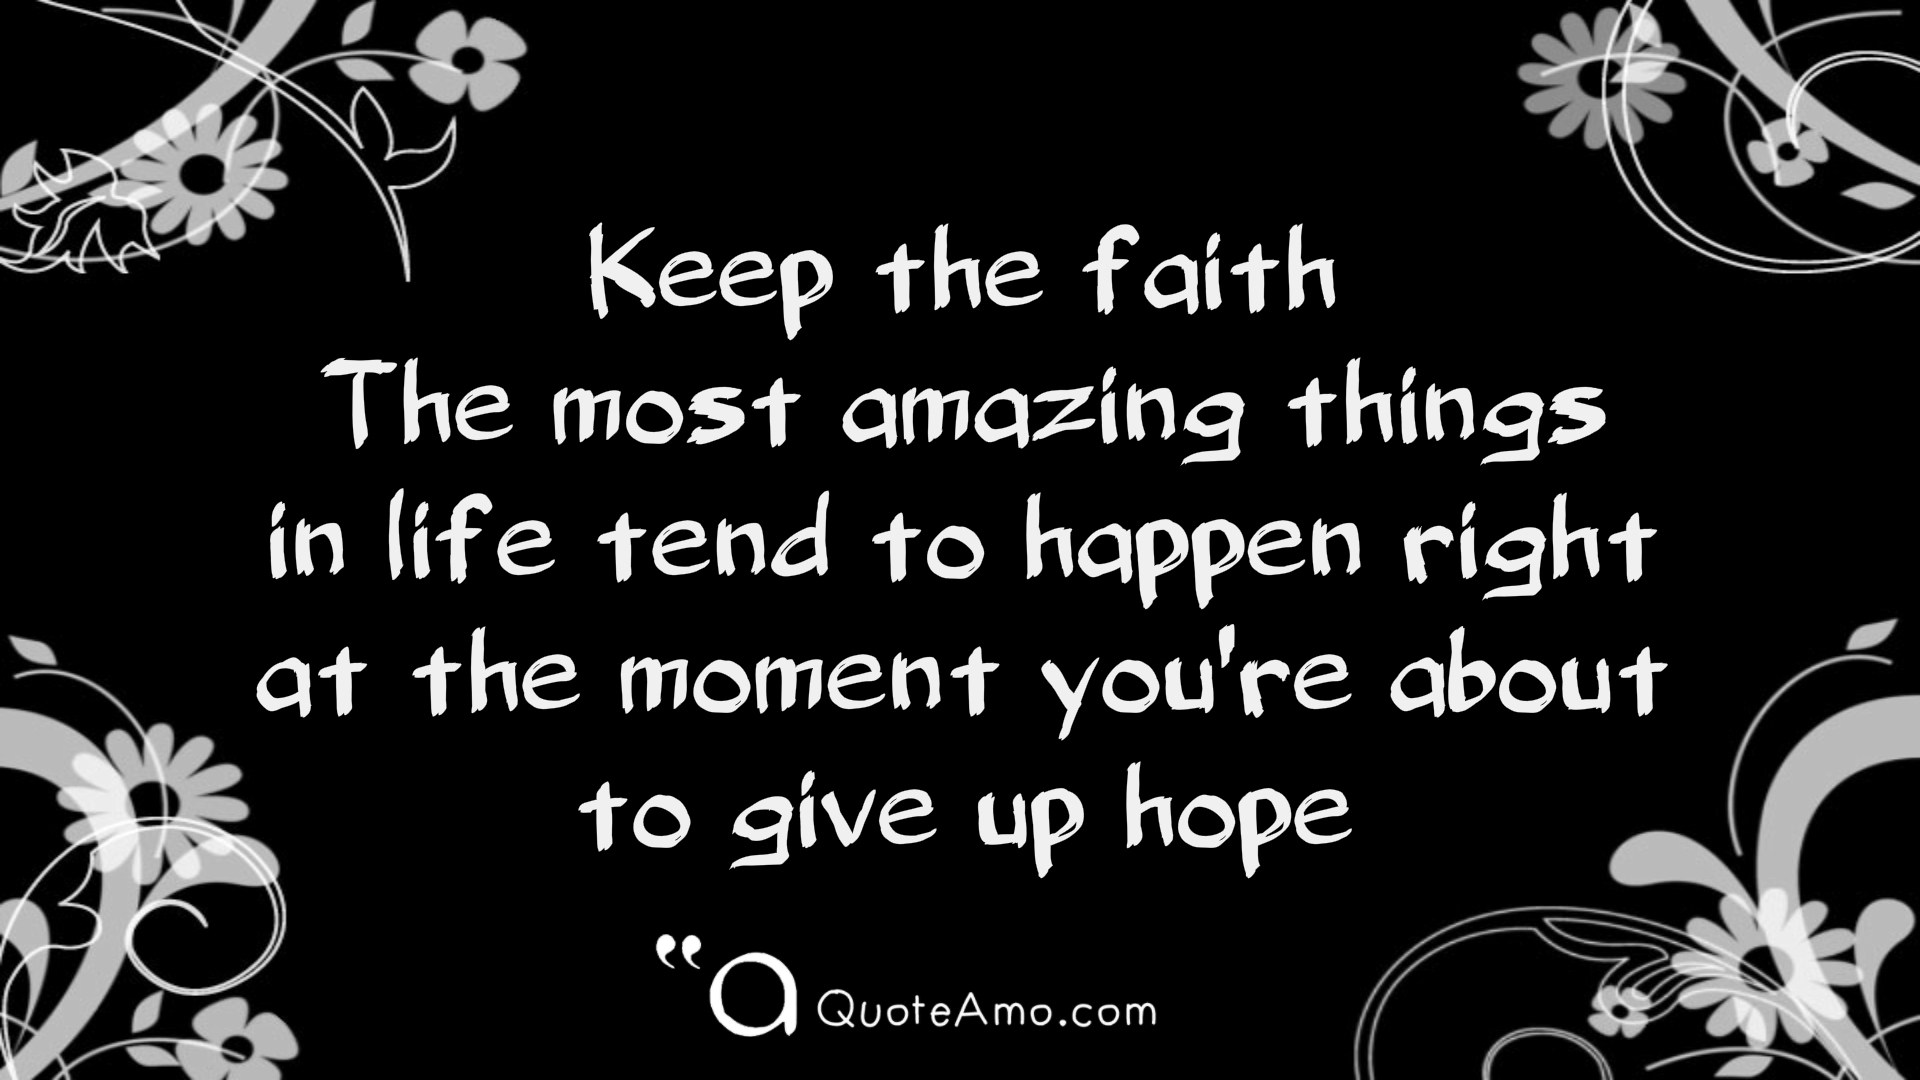 Keep The Faith  Life Wallpaper Quotes and Sayings  HD 1920 * 1080 ...